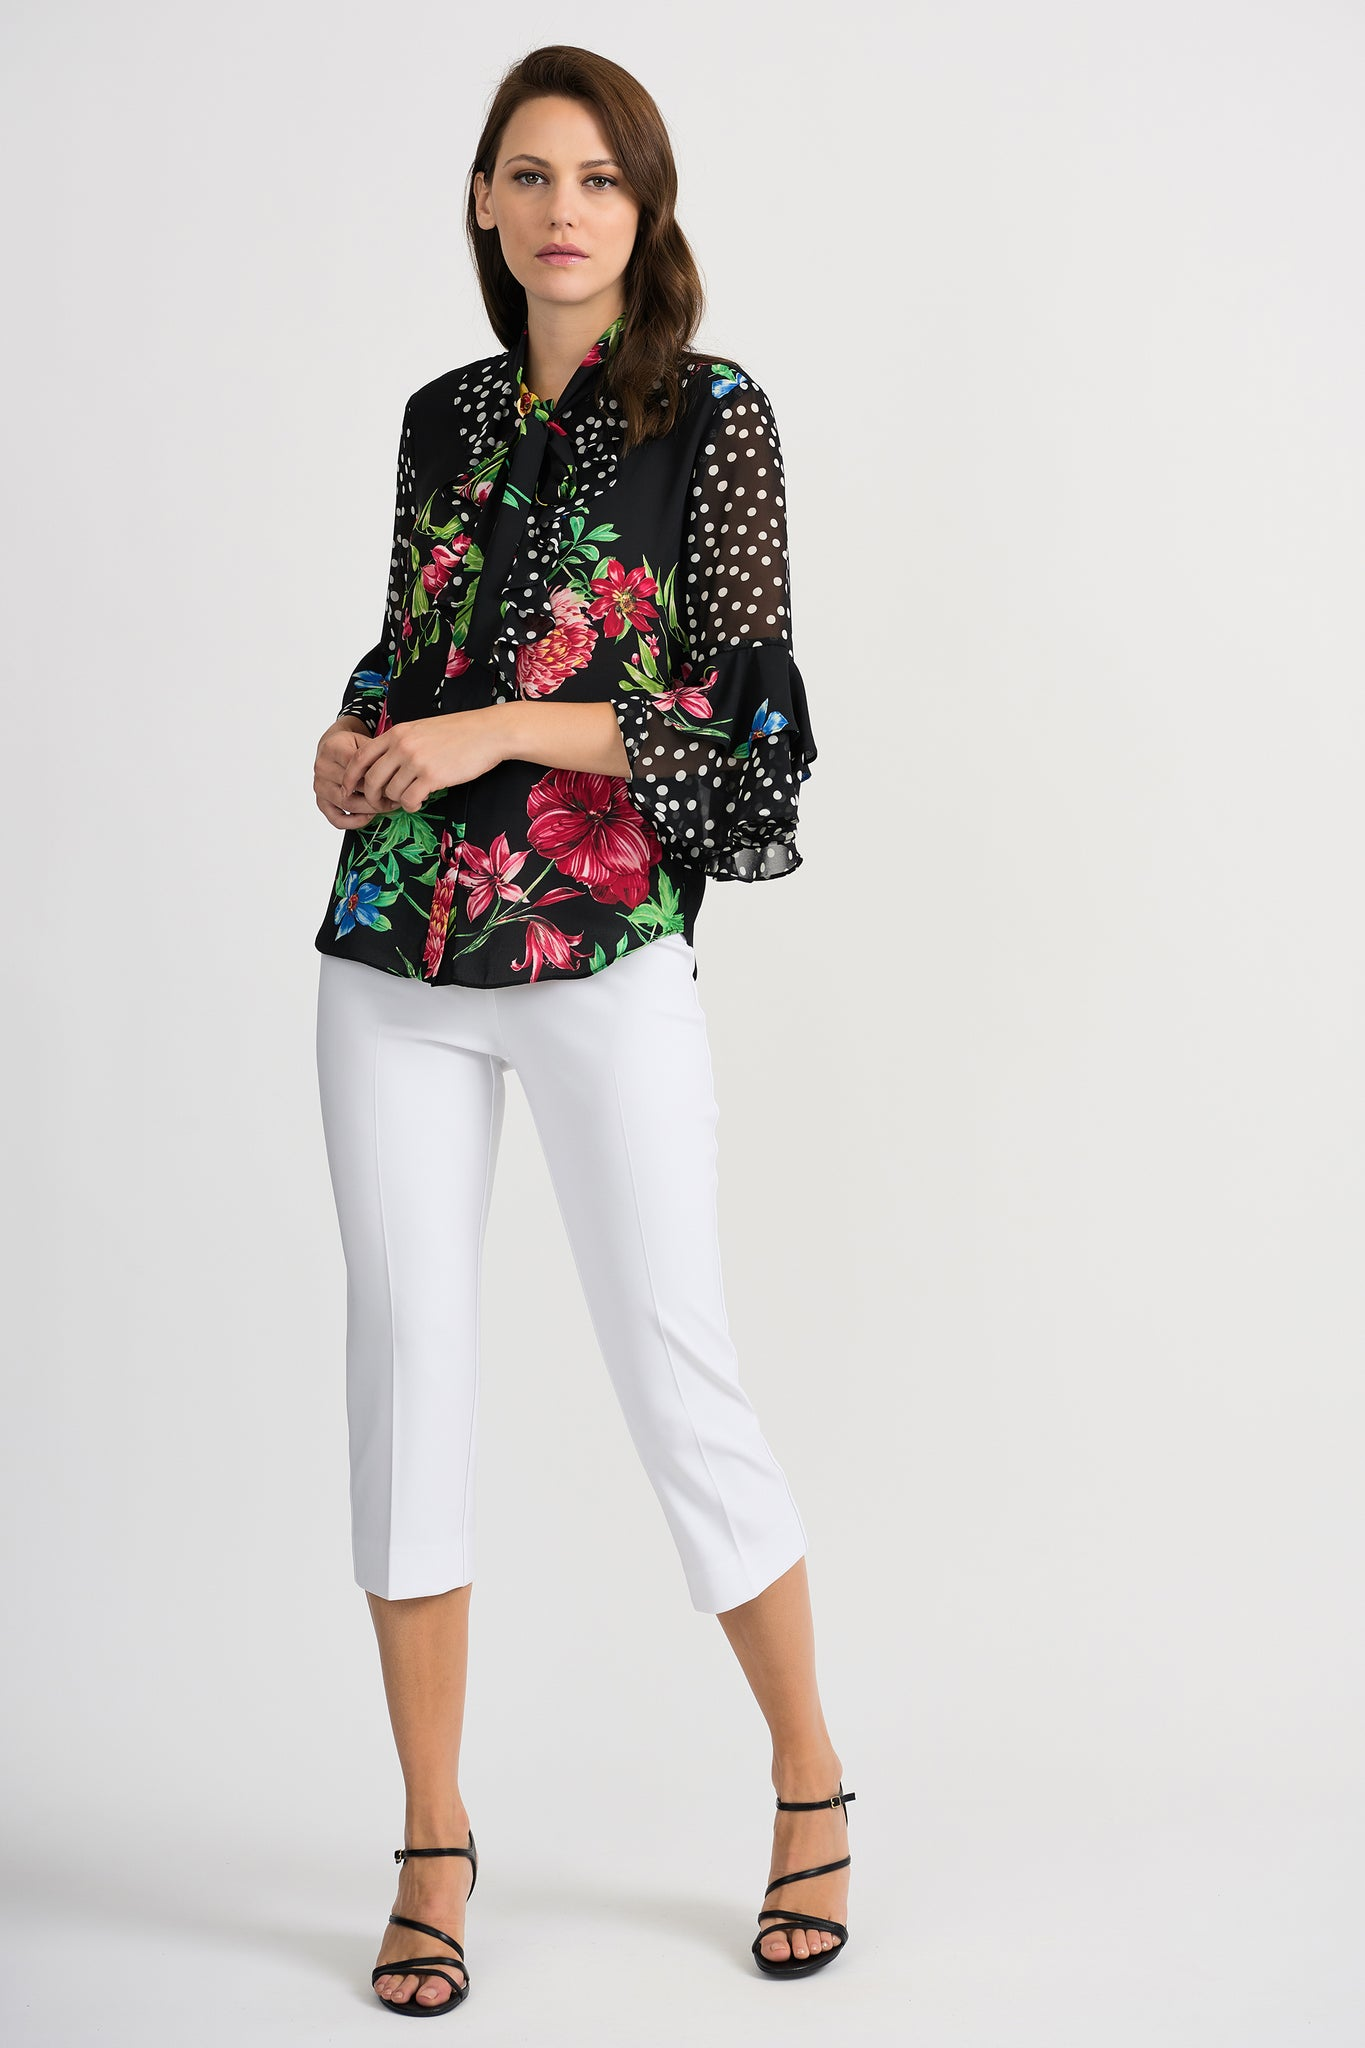 JOSEPH RIBKOFF LADIES BLACK MULTI FLORAL LS TOP